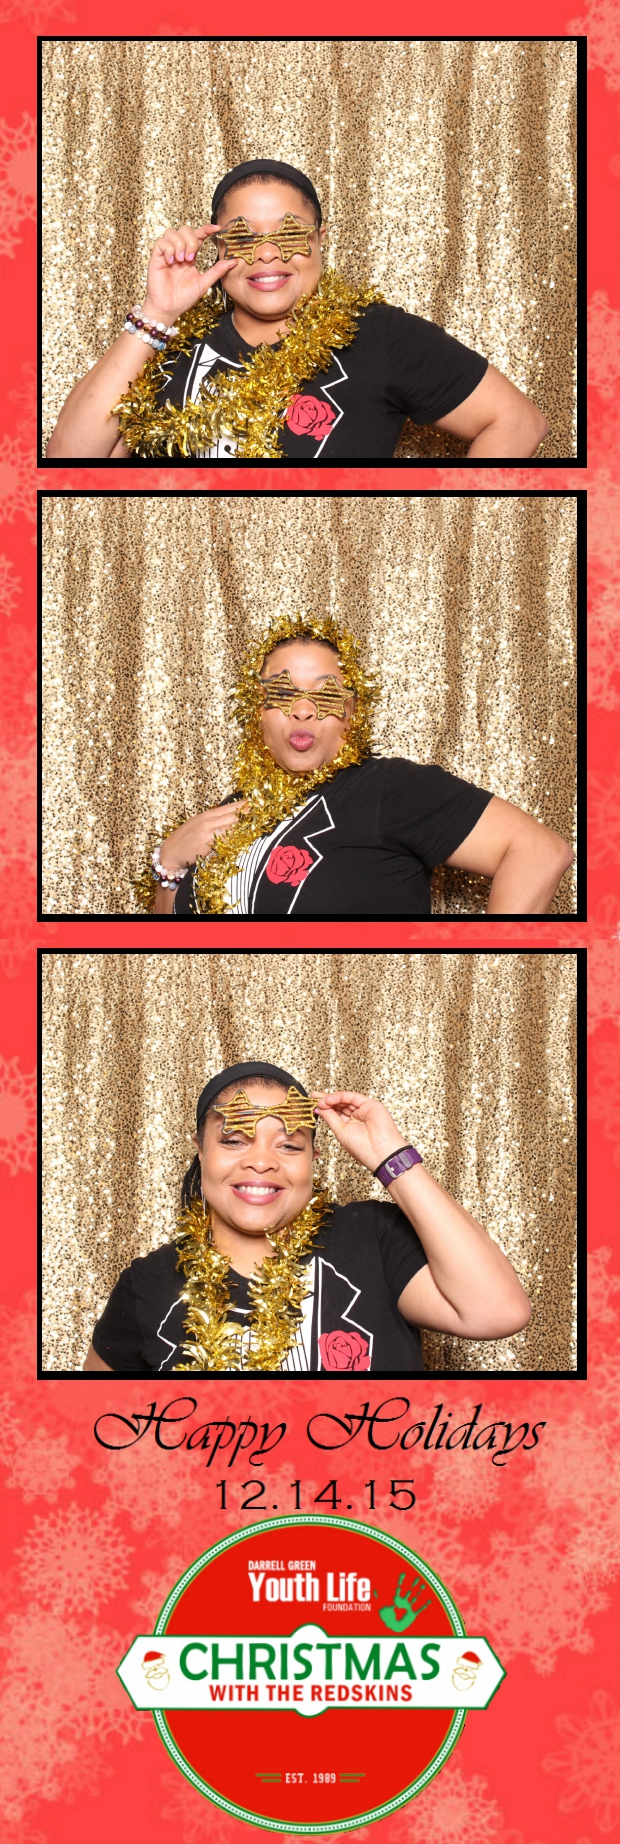 Guest House Events Photo Booth DGYLF Strips (3).jpg